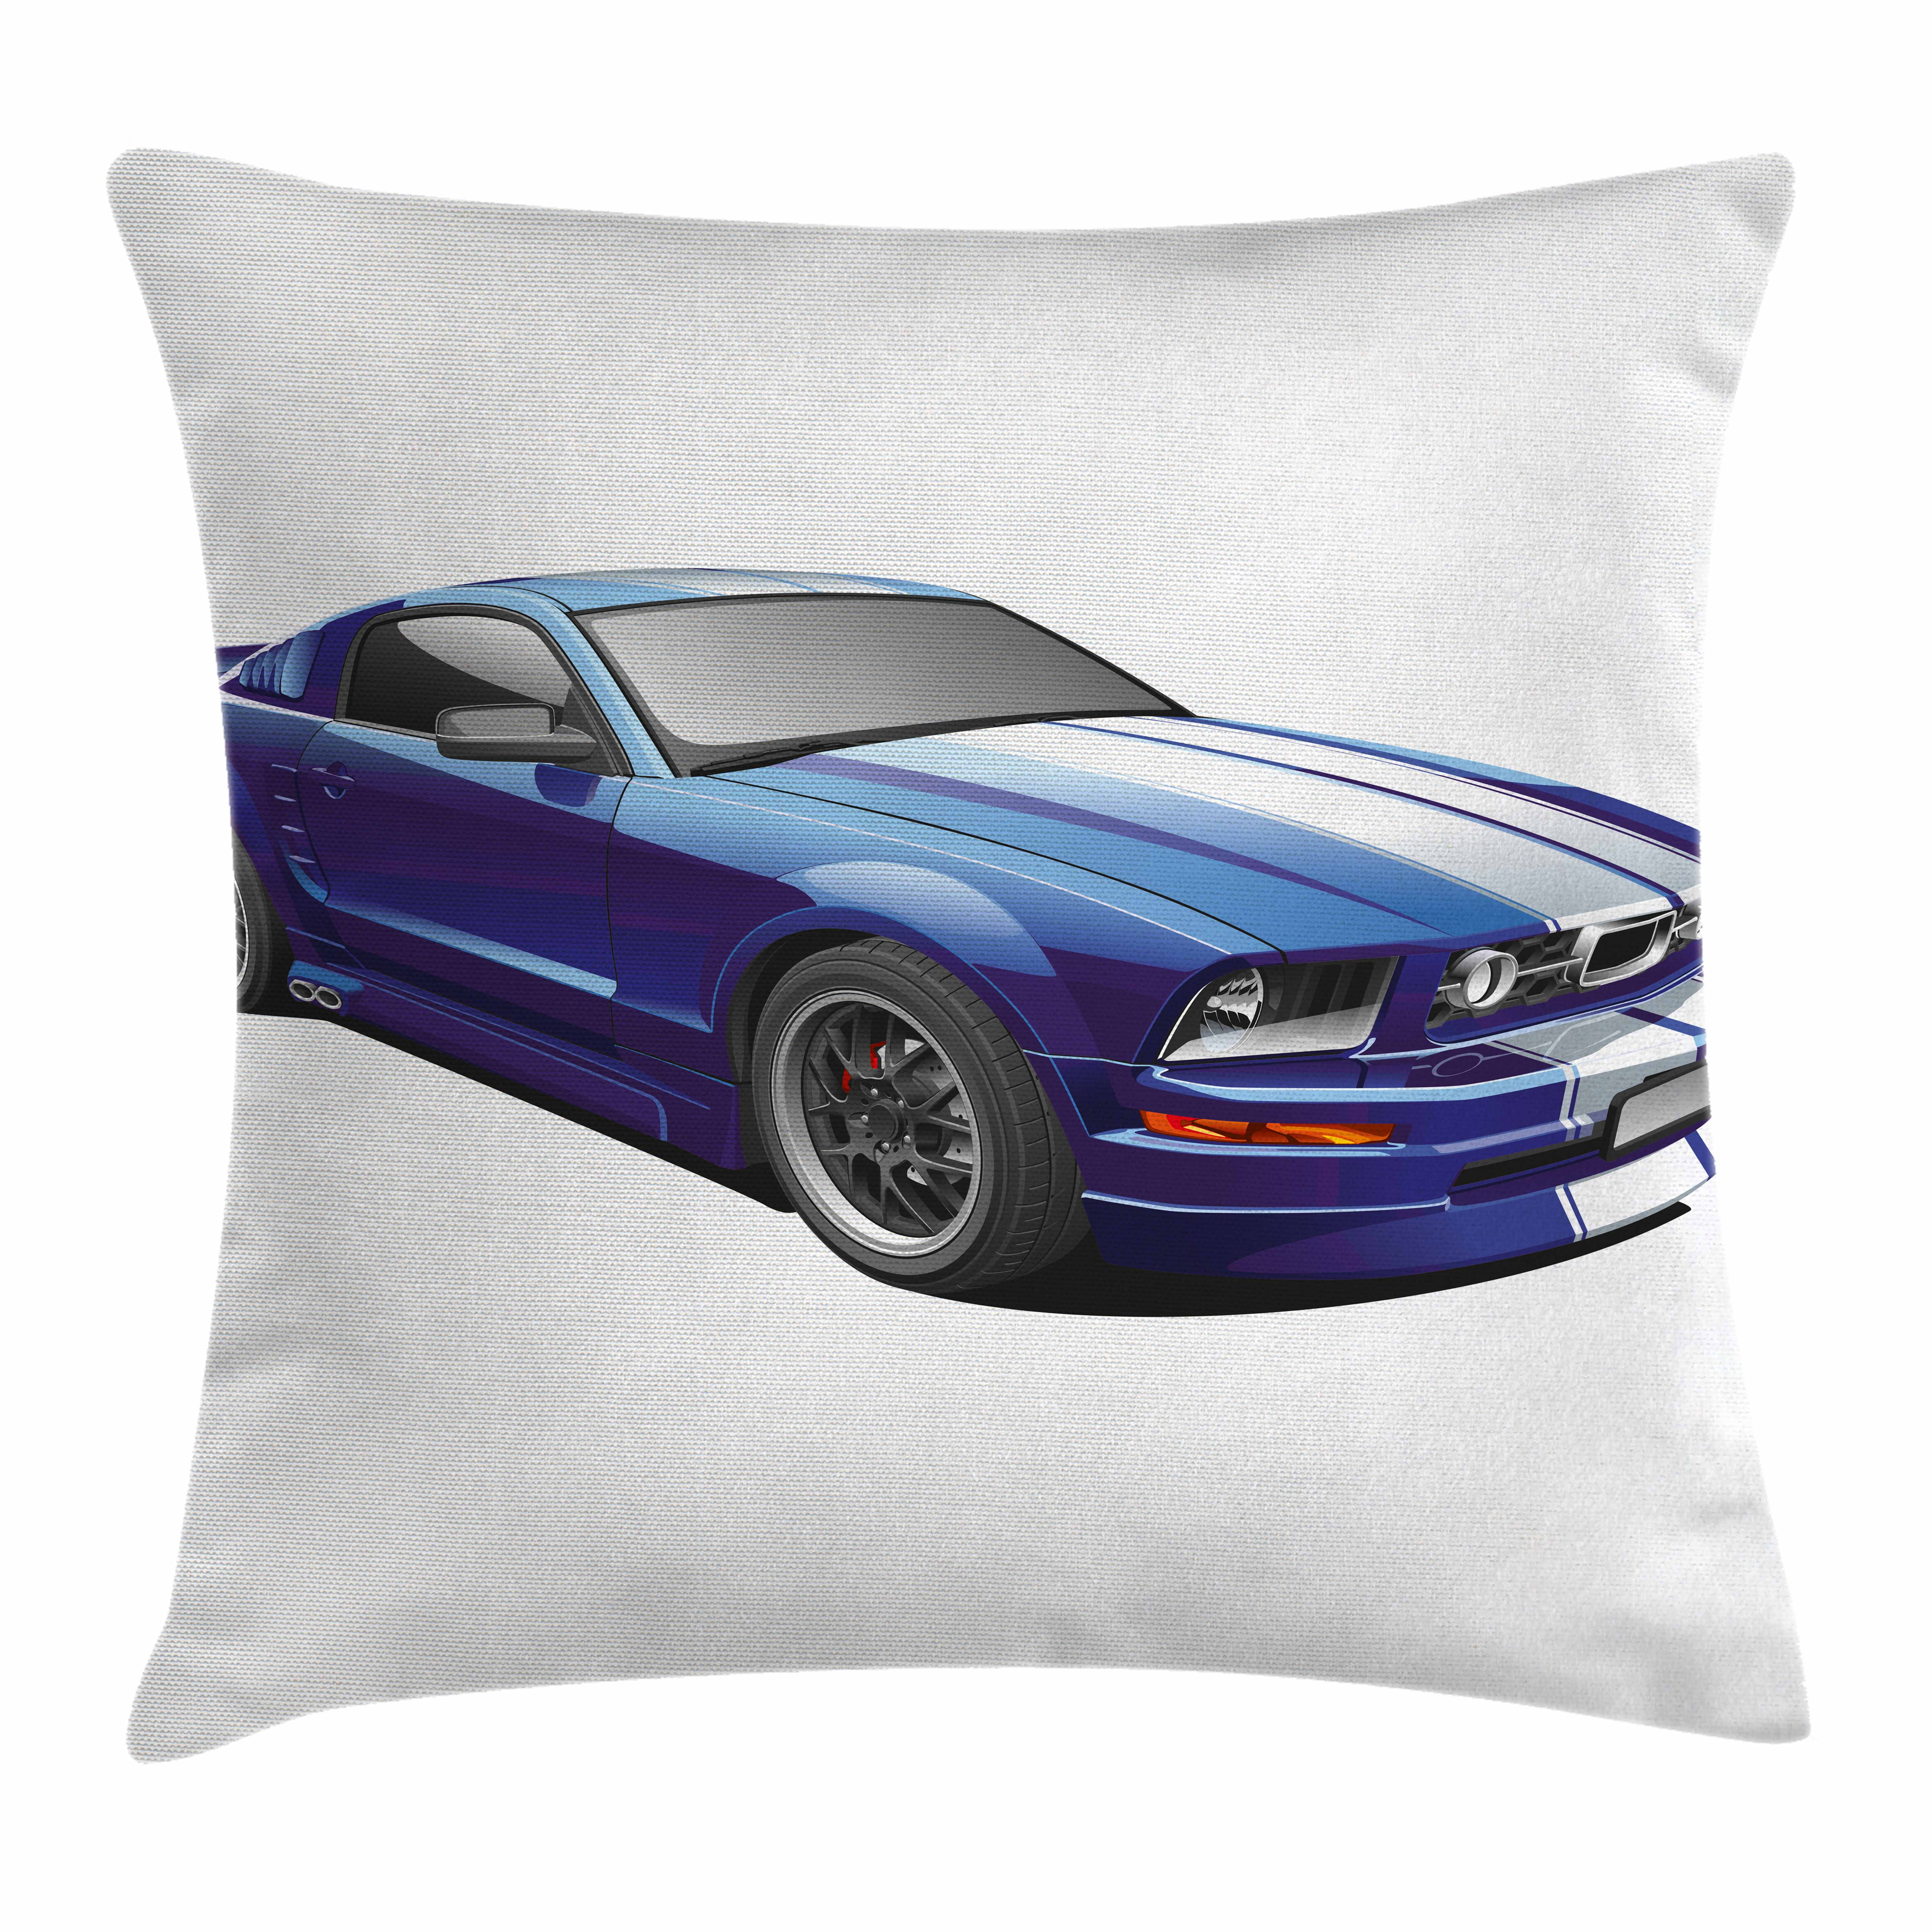 Teen Room Decor Throw Pillow Cushion Cover, American Auto Racing Car Sports Competition Speed Winner Boys Kids Graphic, Decorative Square Accent Pillow Case, 18 X 18 Inches, Blue Grey, by Ambesonne